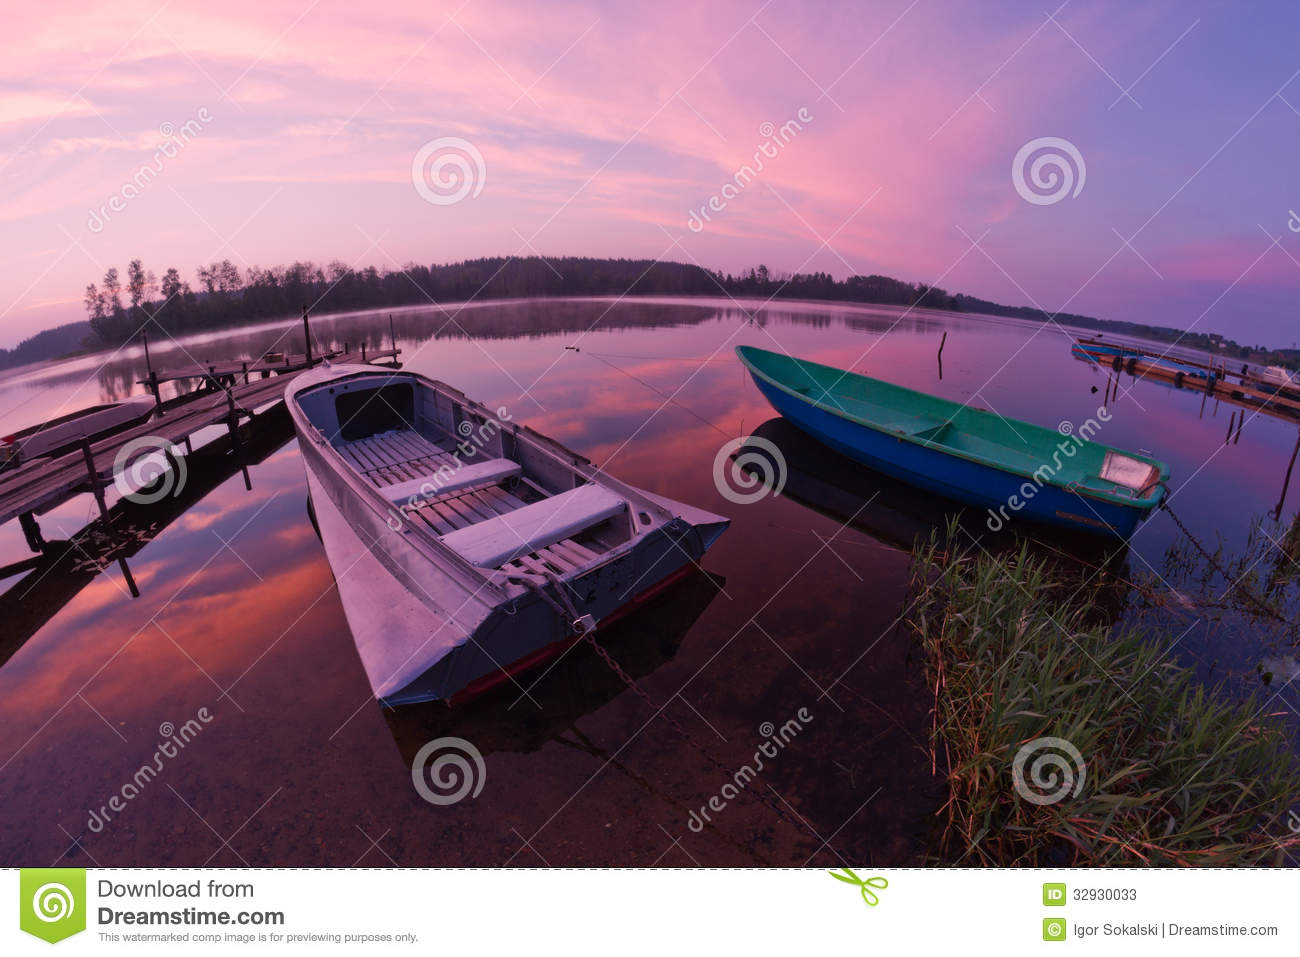 Seliger See: Bootssonnenaufgang